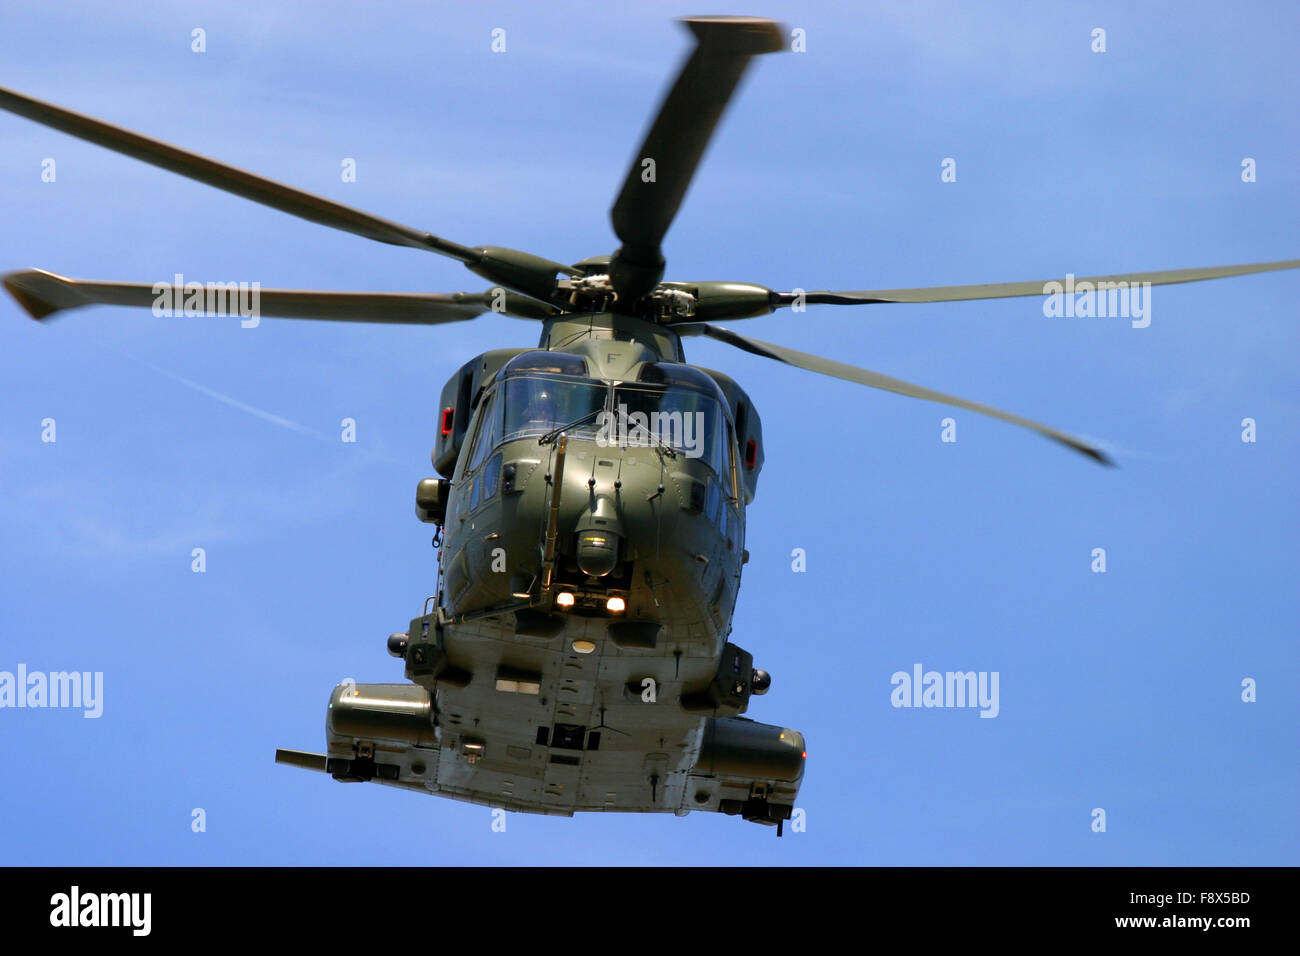 Military helicopter in flight at UK air show - Stock Image